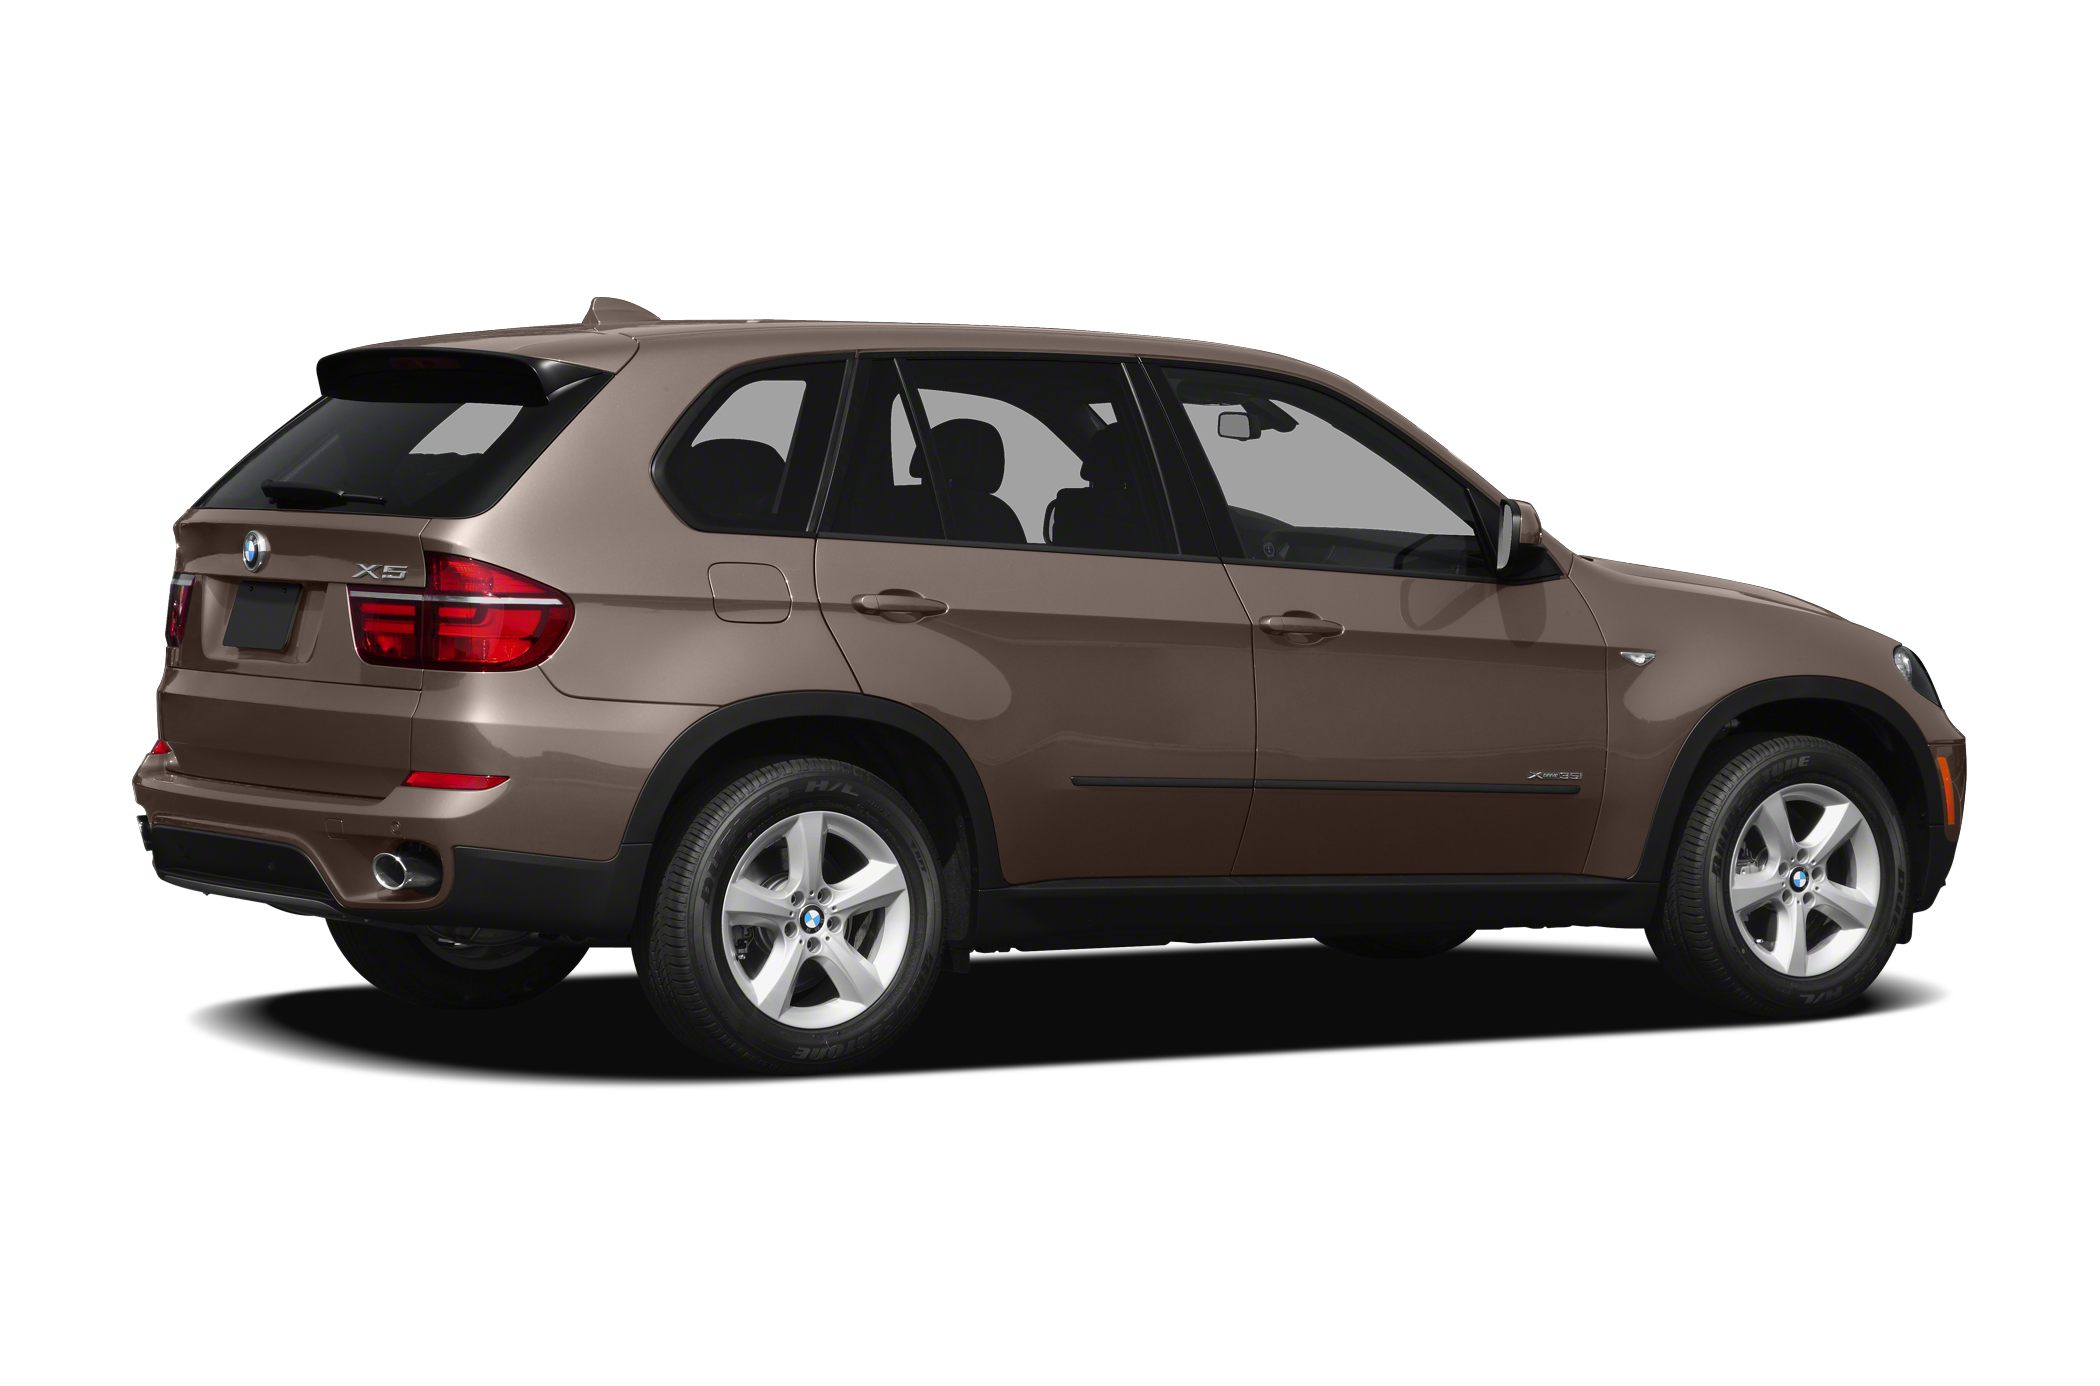 2011 BMW X5 xDrive35d WHENIT COMES TO EXCELLENCE IN USED CAR SALES YOU KNOW YOU Miles 78467Co